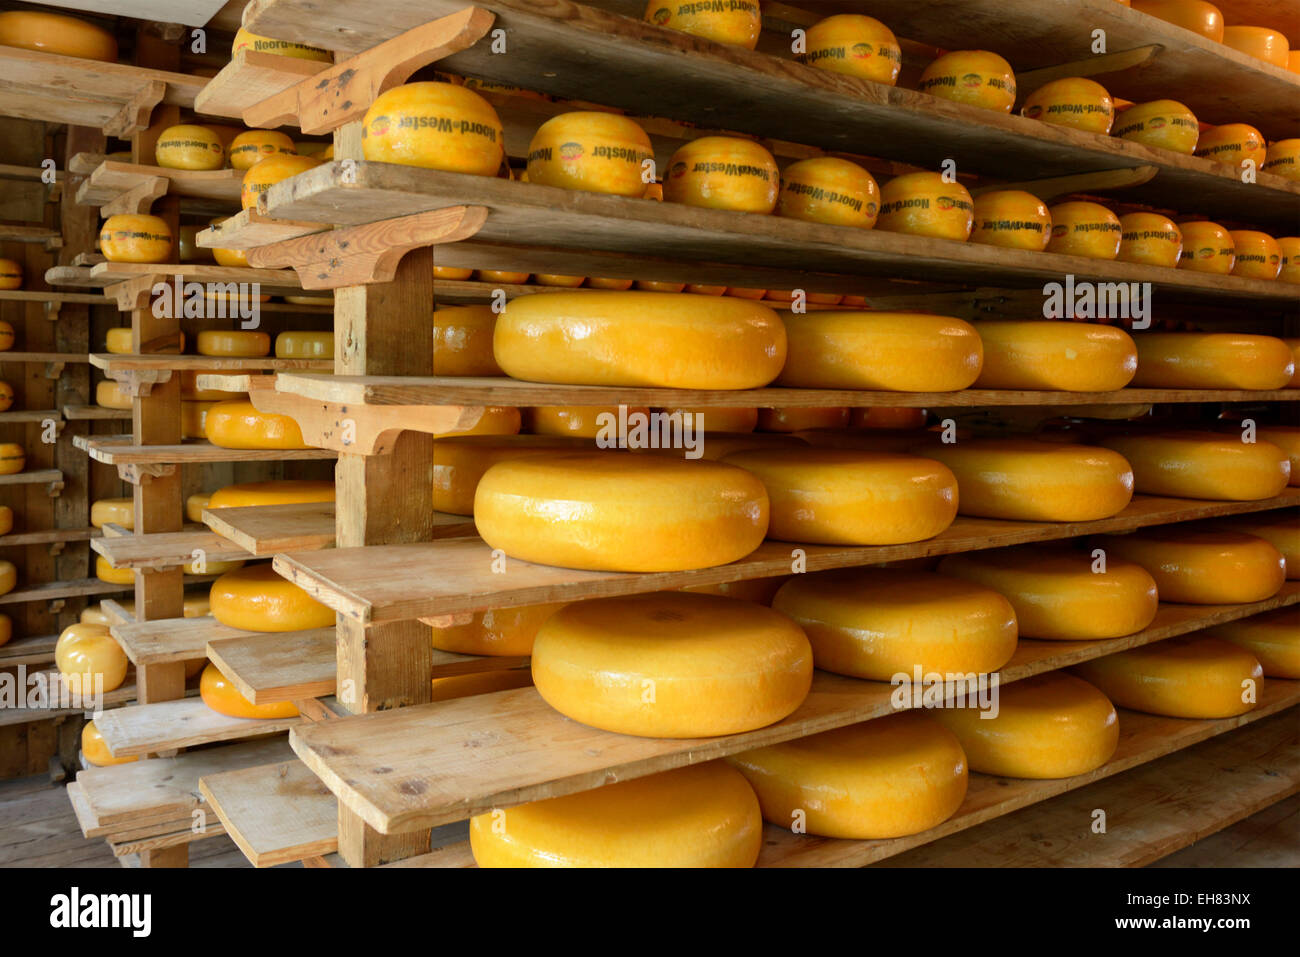 Cheese warehouse, Zuiderzee open air museum, Lake Ijssel, Enkhuizen, North Holland, Netherlands, Europe - Stock Image